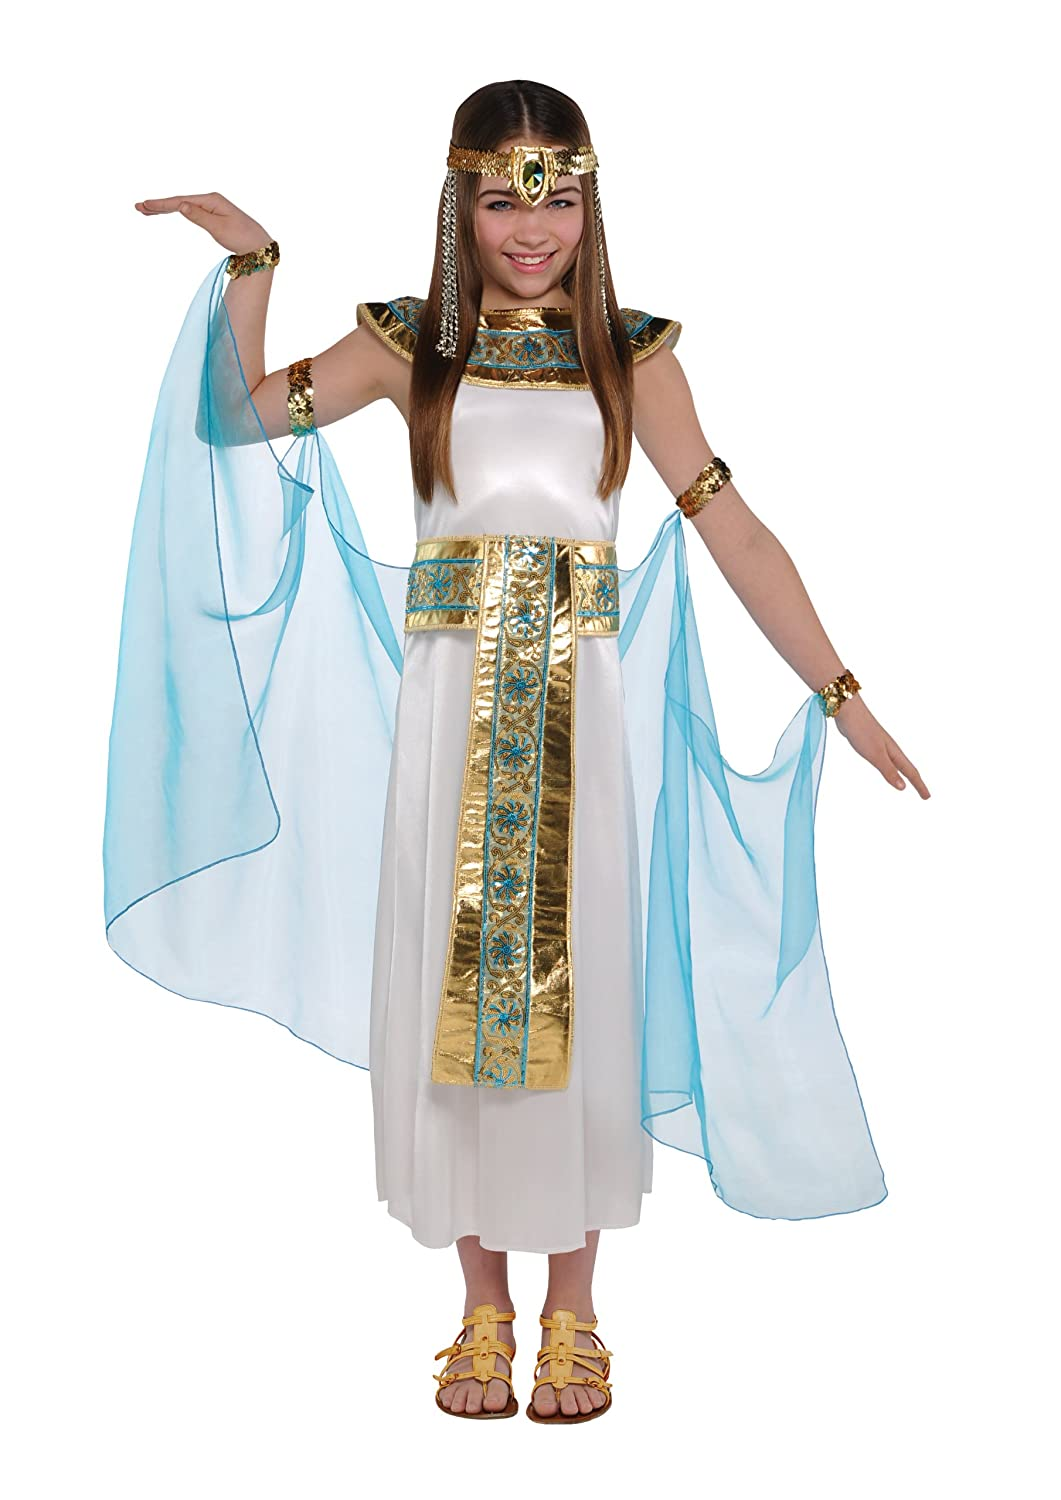 Girls Cleopatra Fancy Dress Kids Egyptian Queen Costume Kids Outfit Amscan 997692